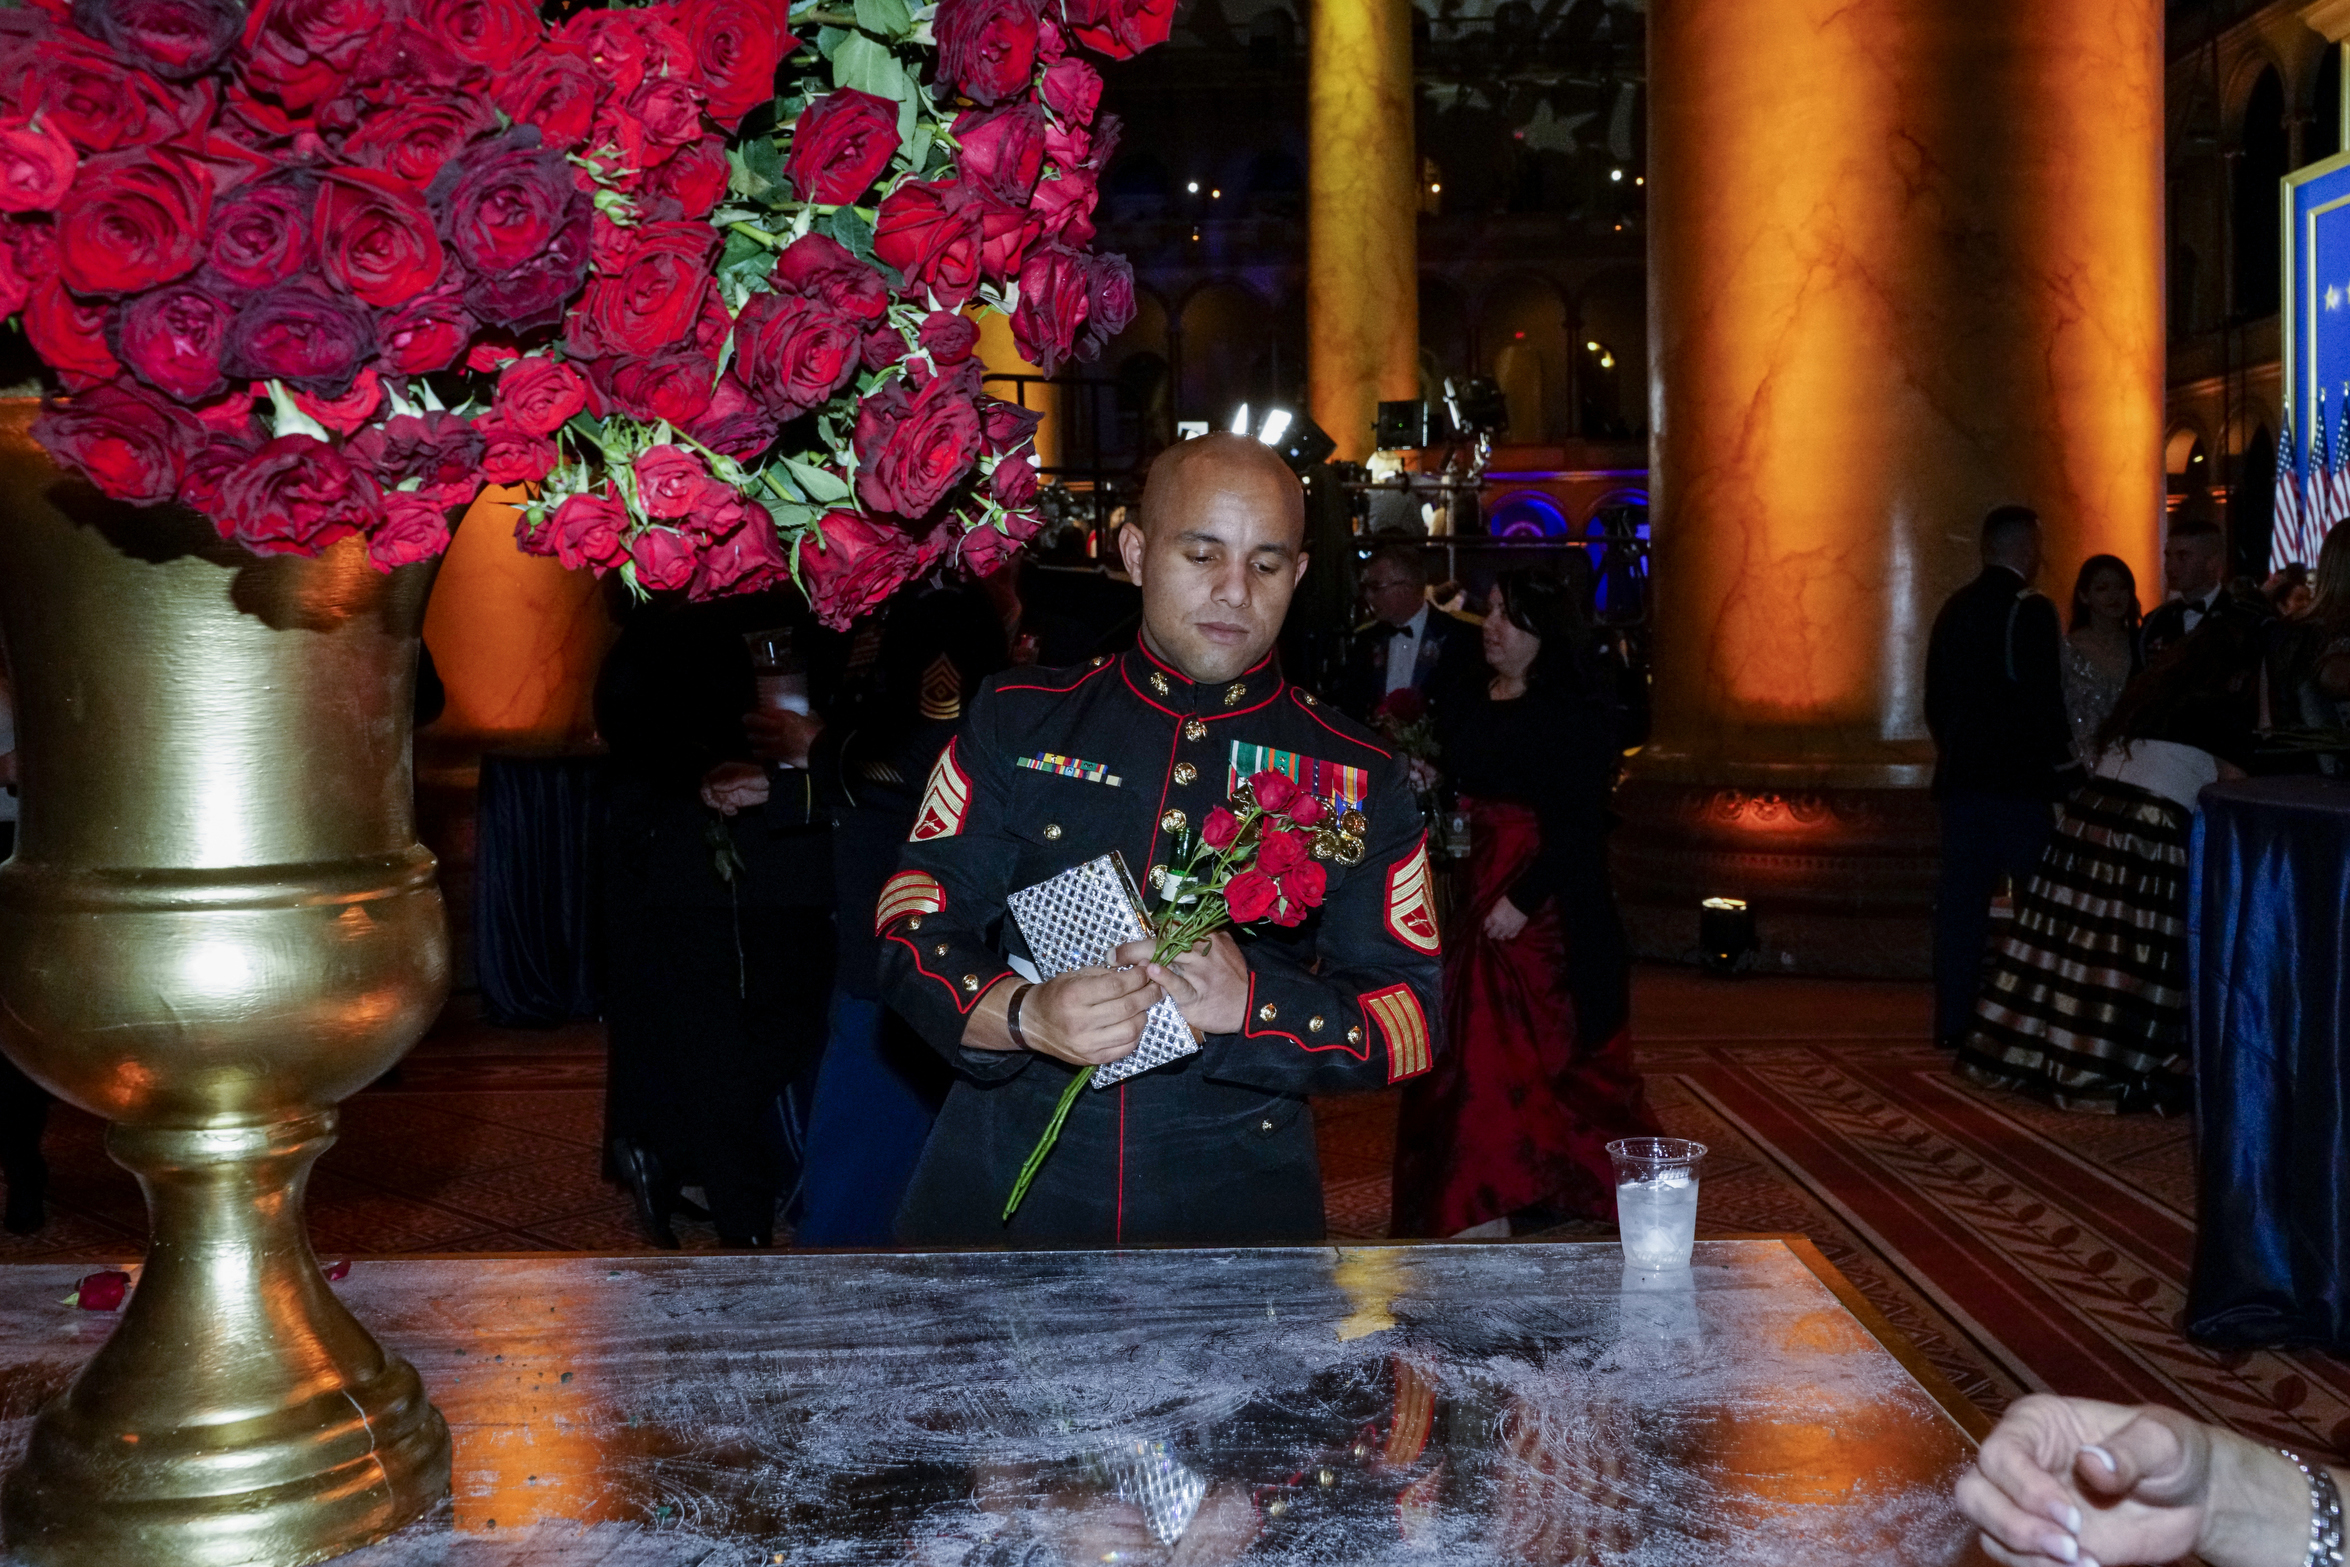 A member of the US Armed Forces at the Salute to Our Armed Services Inaugural Ball at the National Building Museum in Washington, D.C., on Jan 20, 2017.